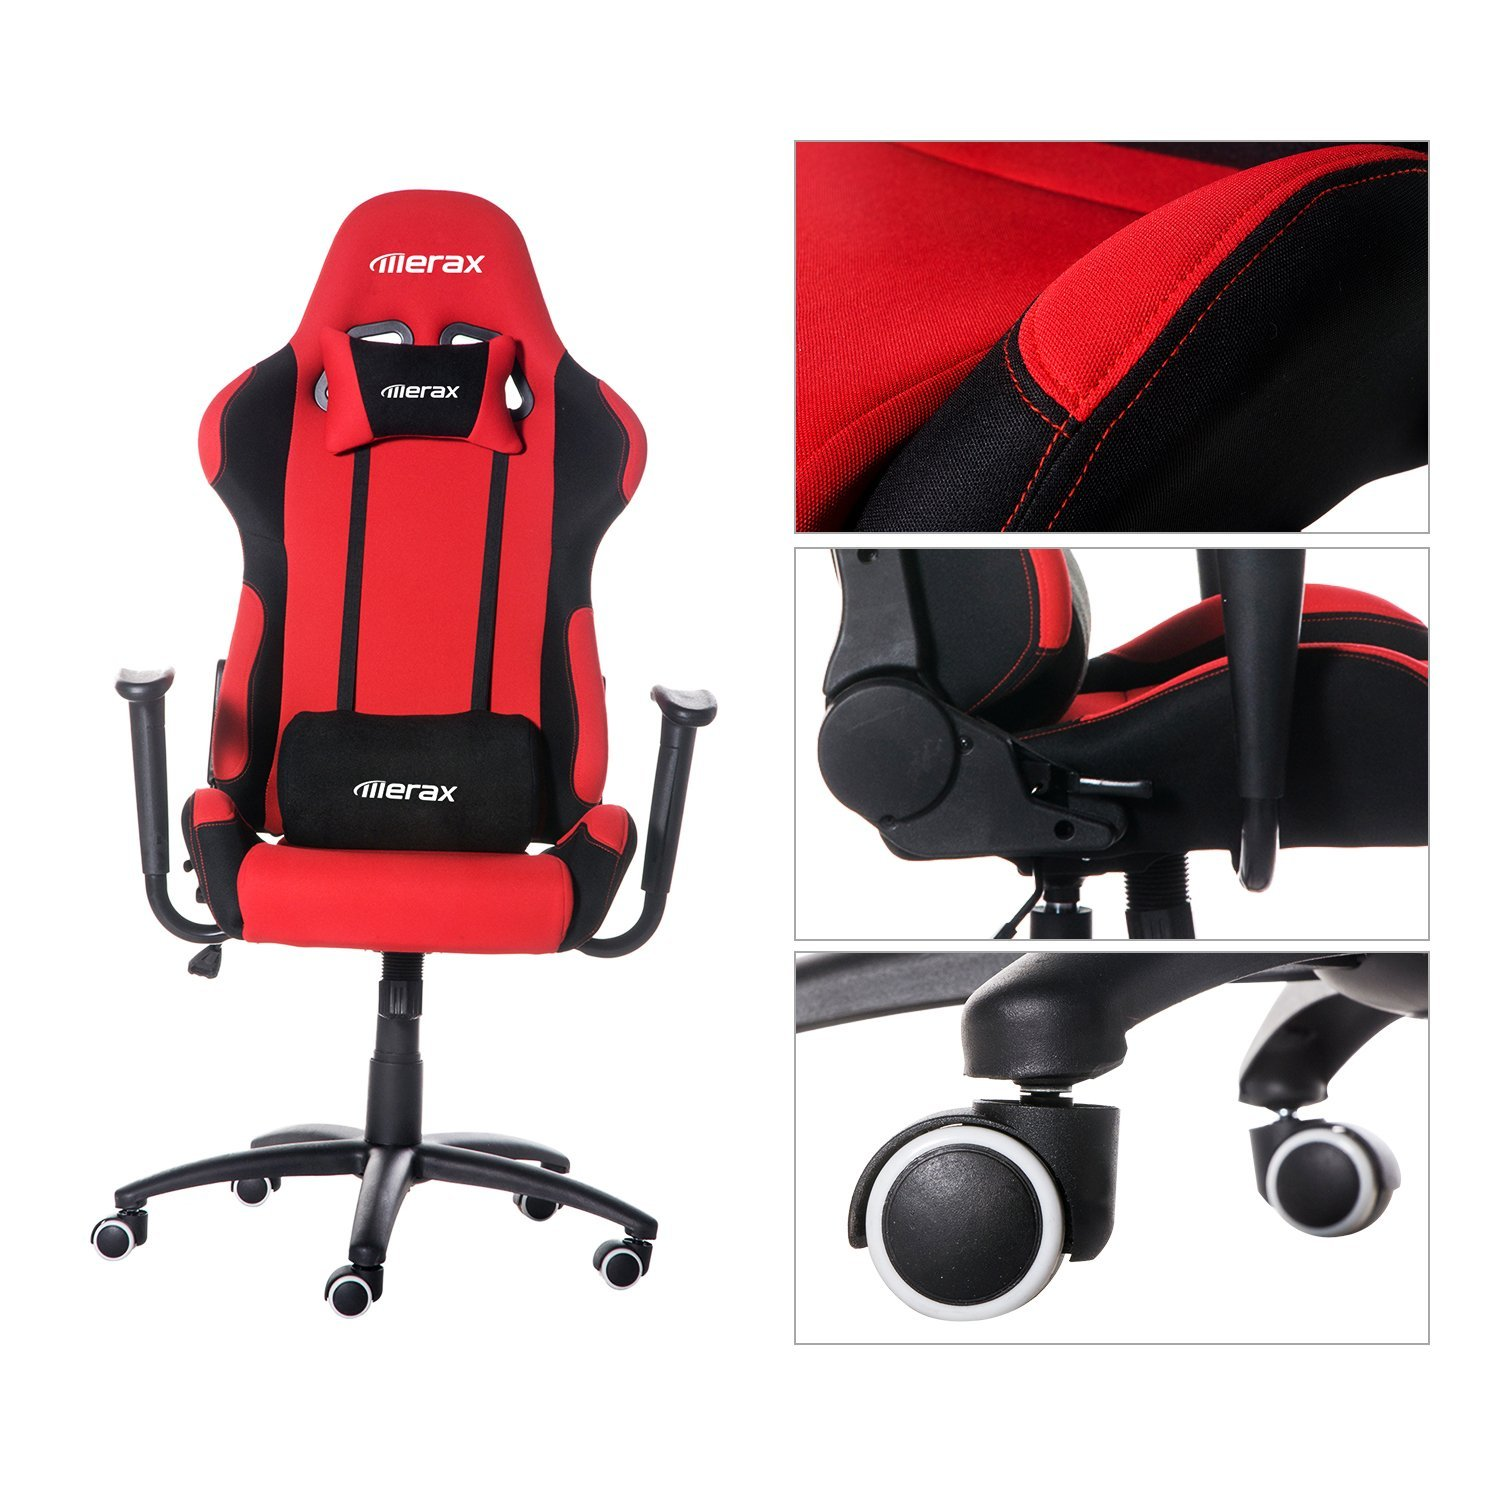 size luxury best chair deluxe chairs sale leather of aeron for managers desk full office racing seat repair executive